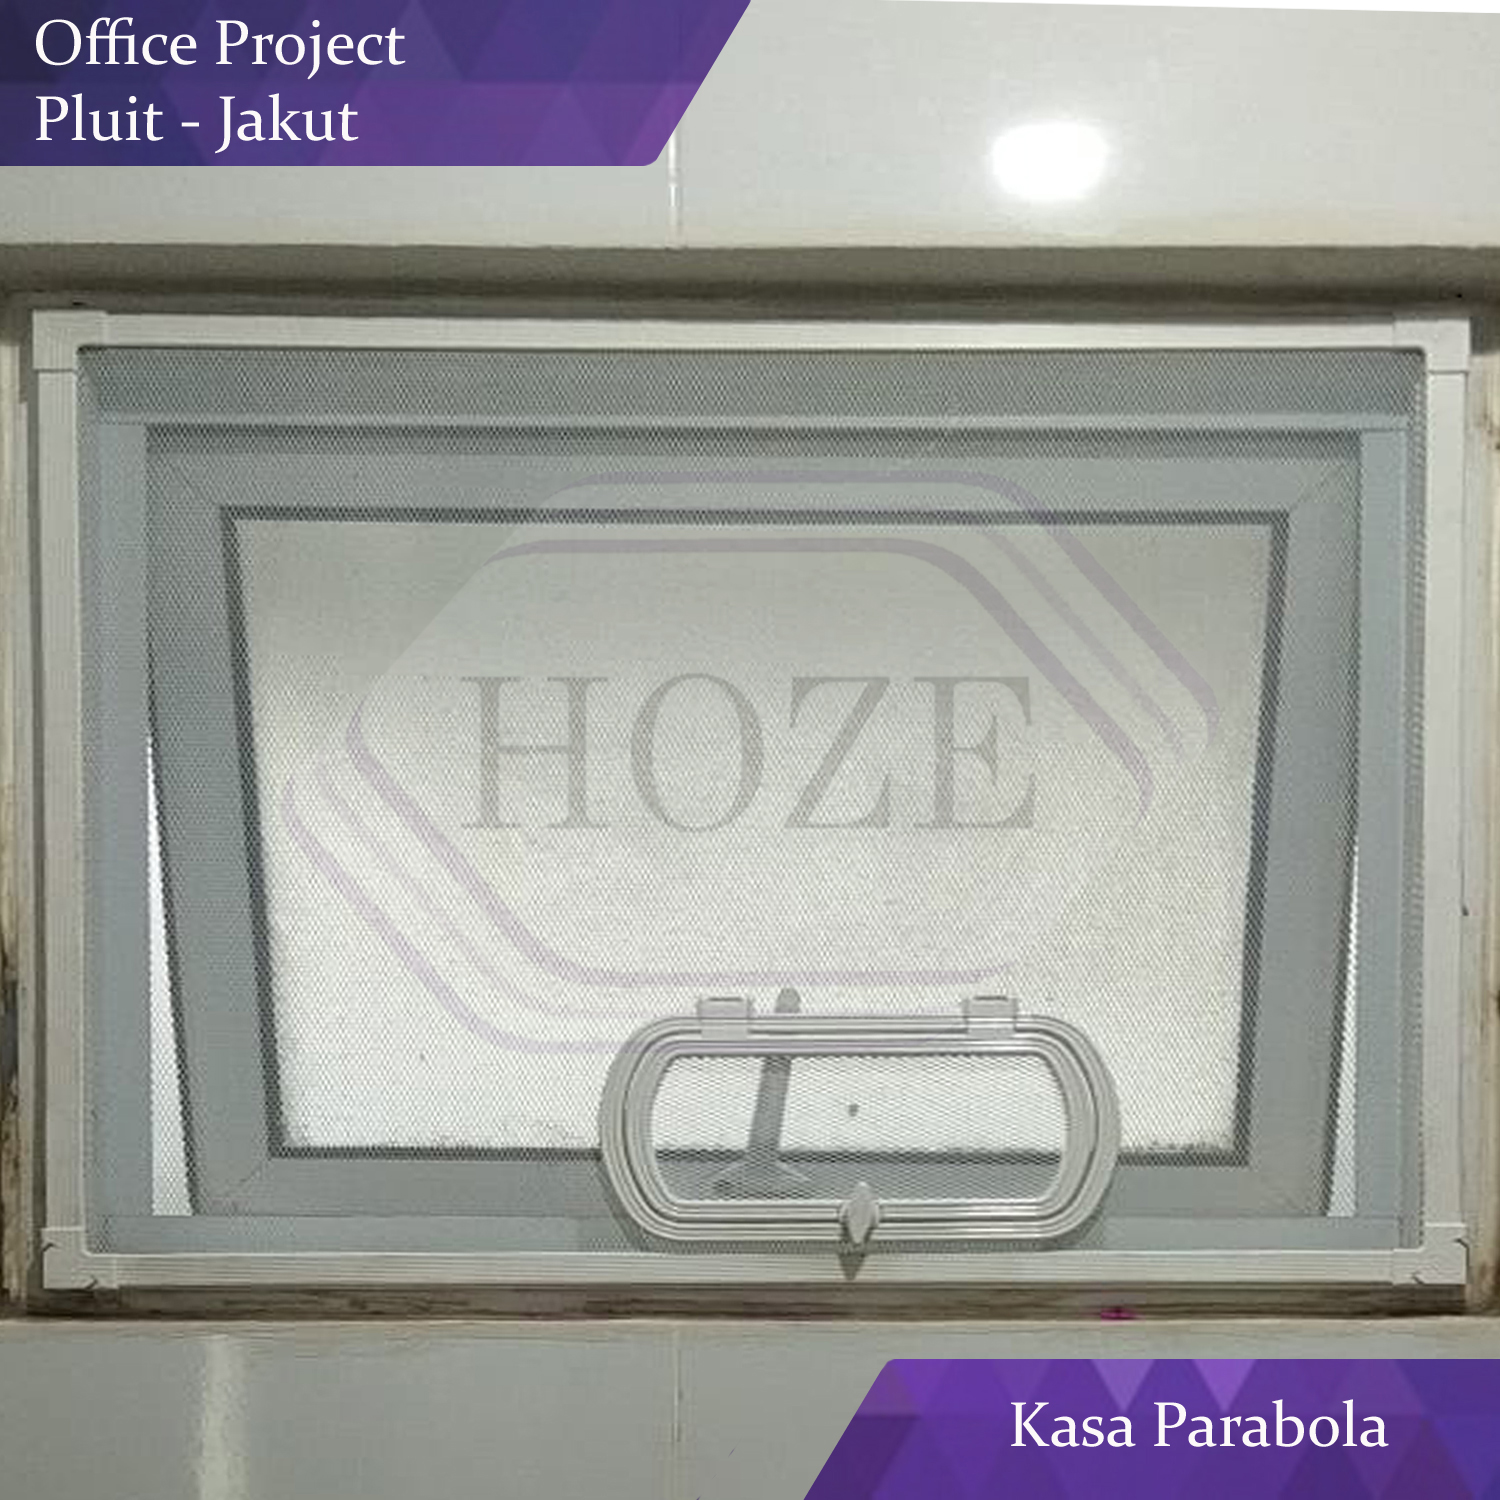 MIS Office Project